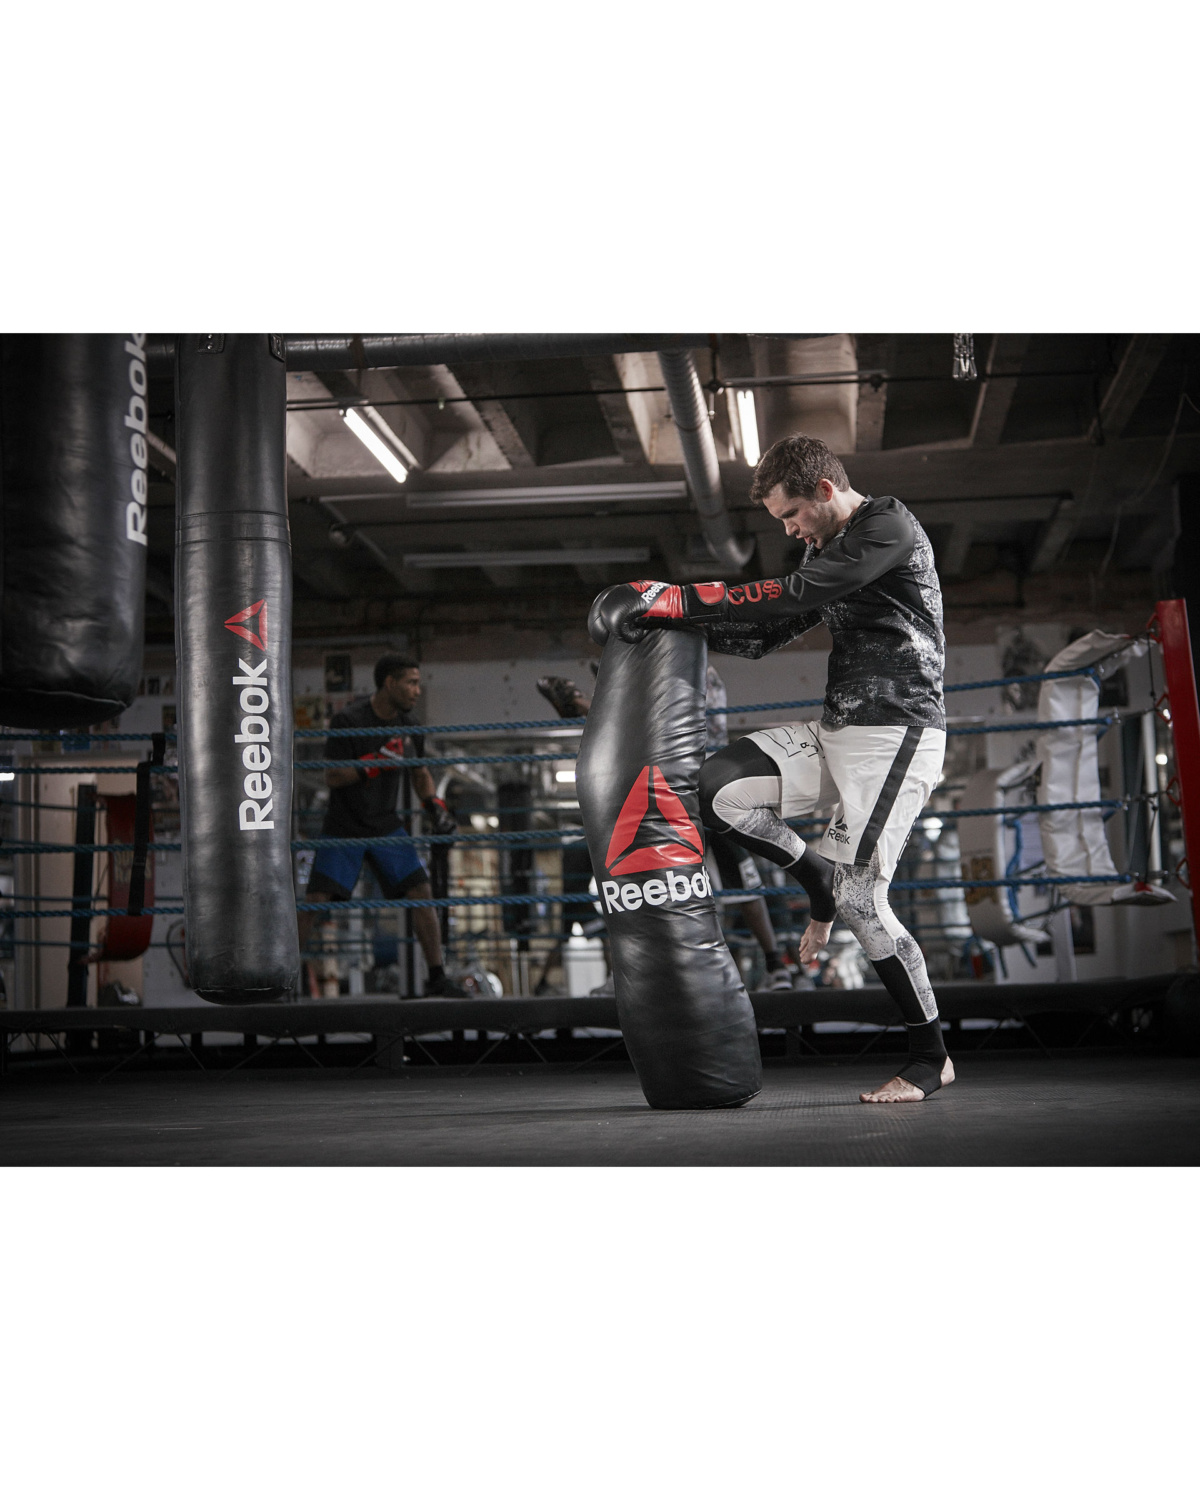 reebok_combat_grapping_bag_lifestyle_32